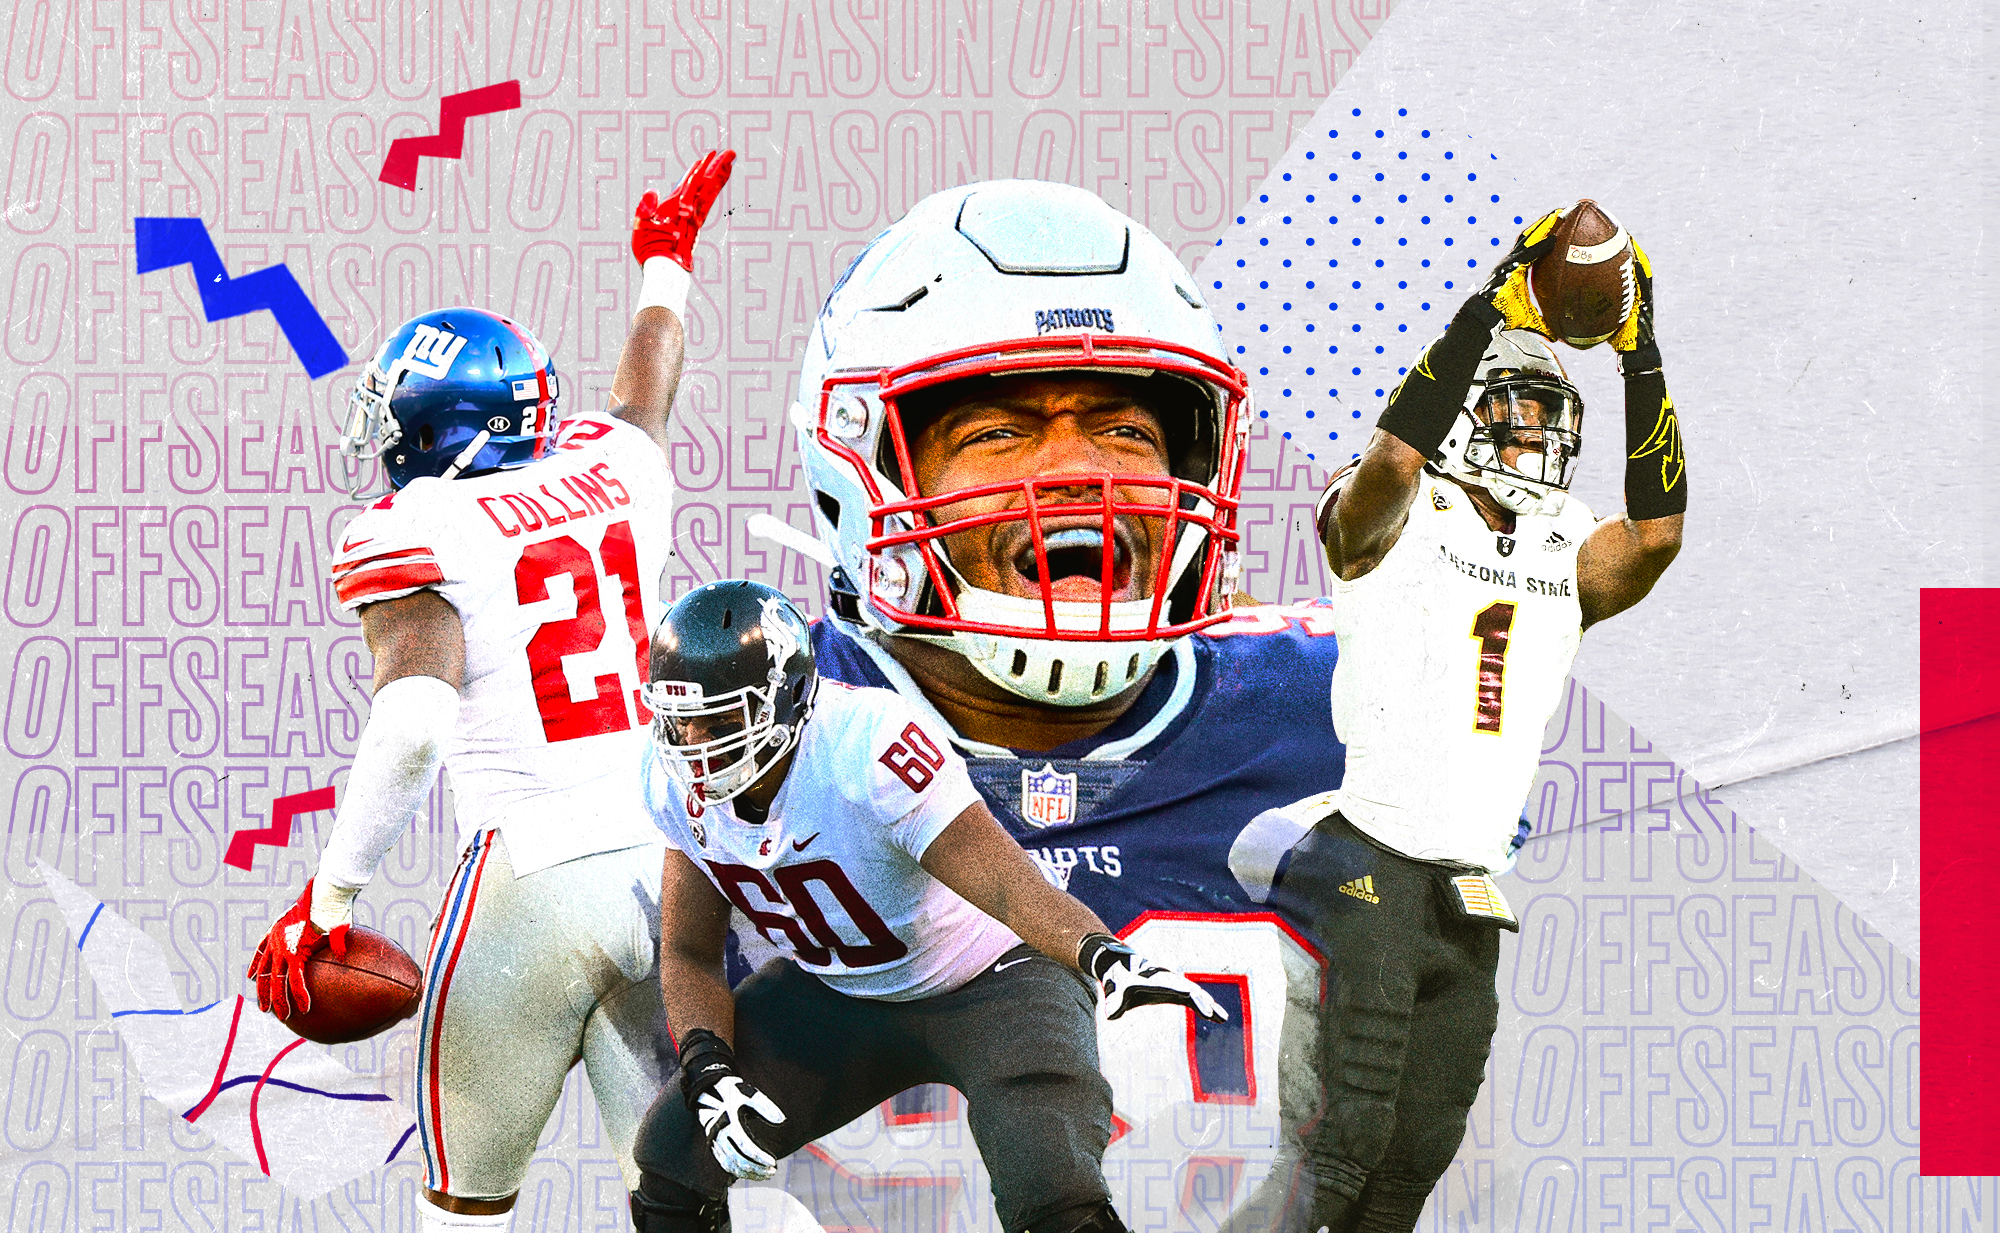 f77fa92f13a Fixing the biggest 2019 offseason needs for all 32 NFL teams